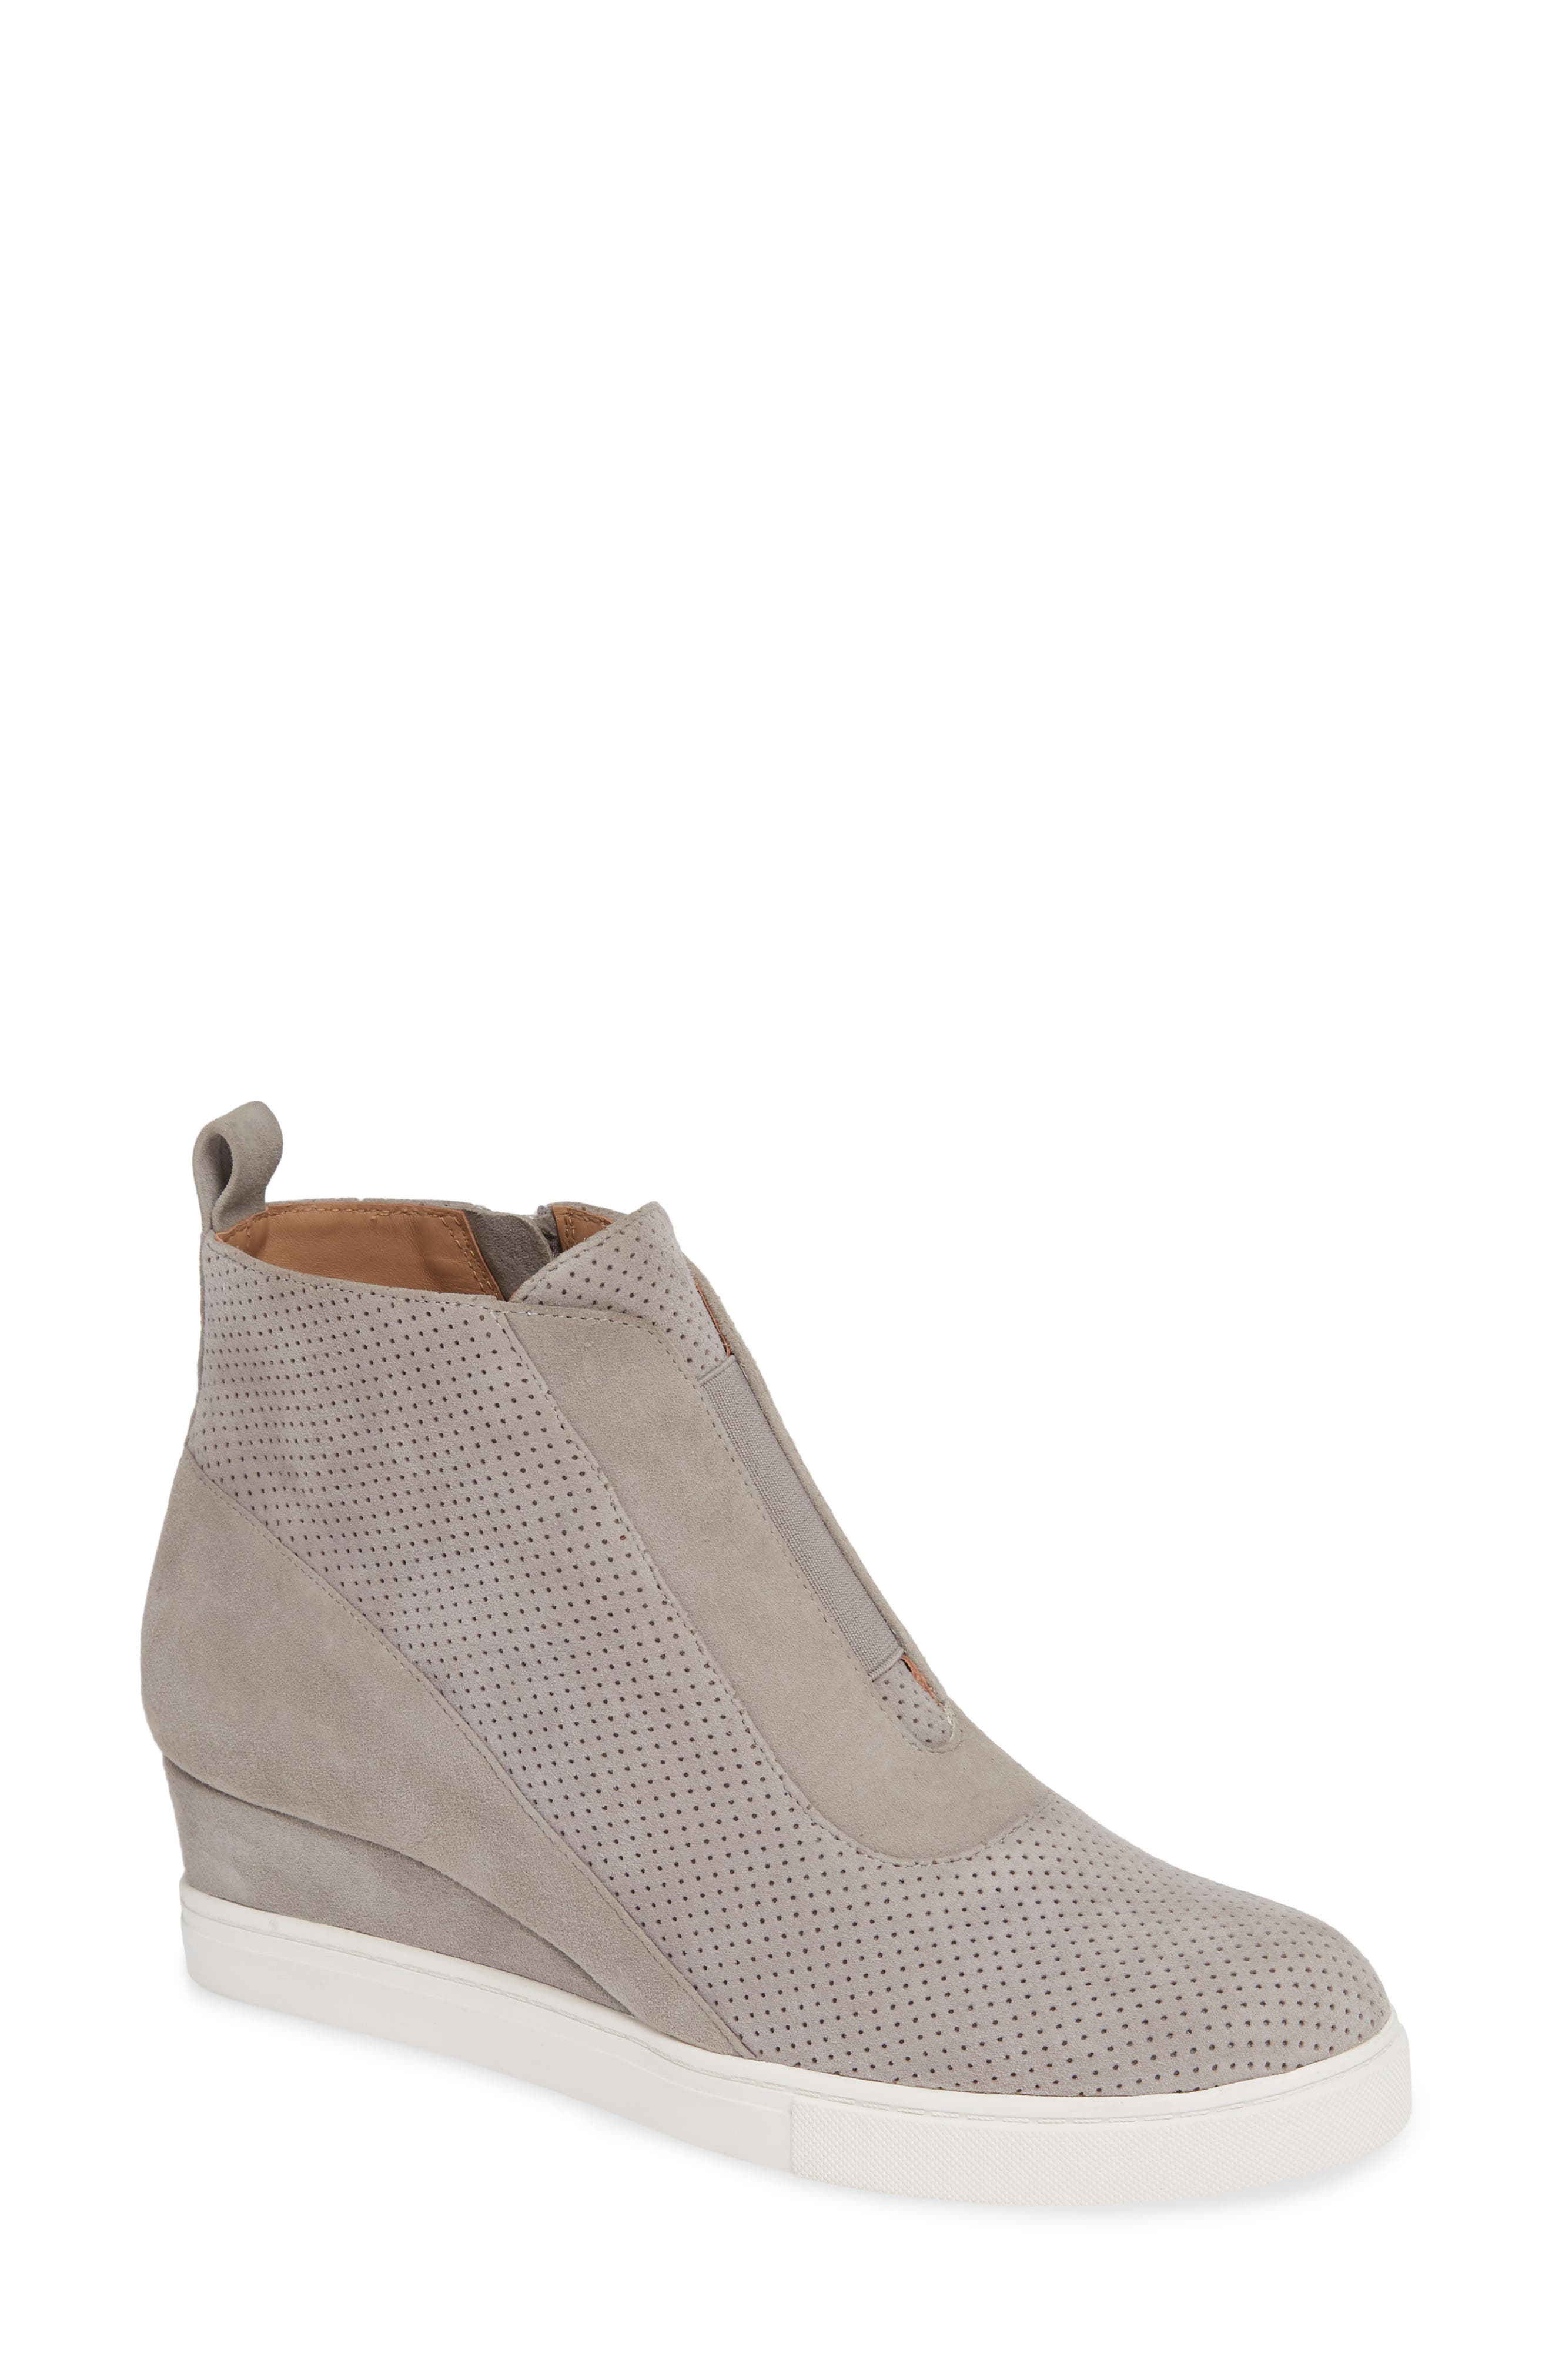 Linea Paolo Anna Wedge Sneaker, Grey